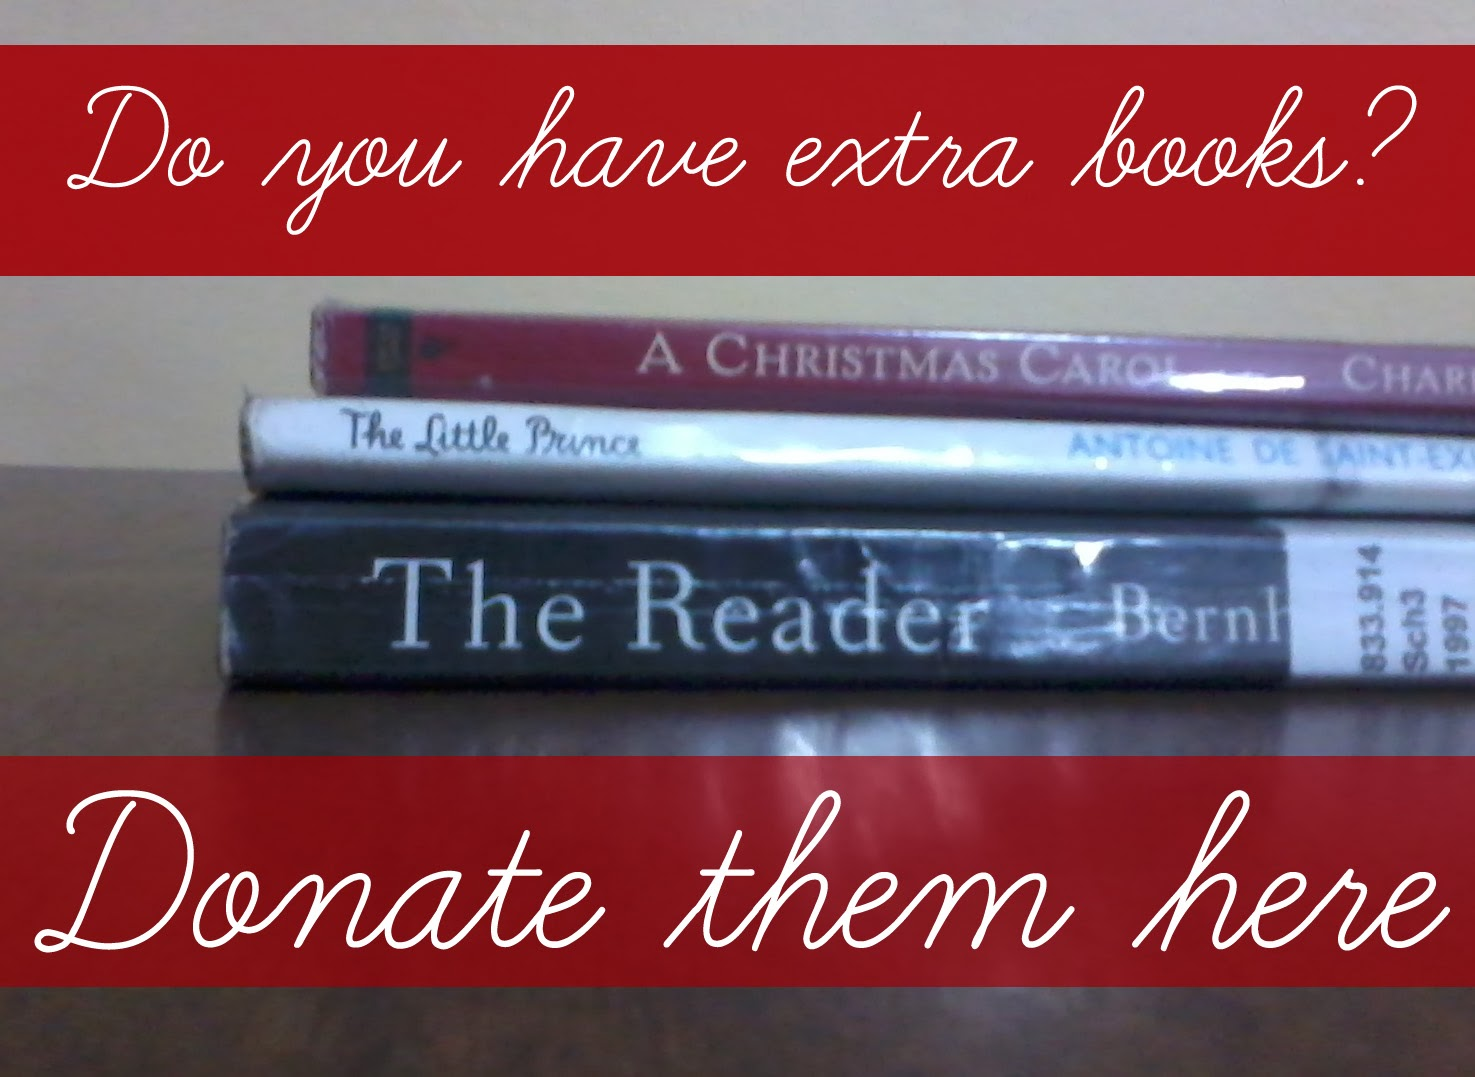 Share and Donate Books